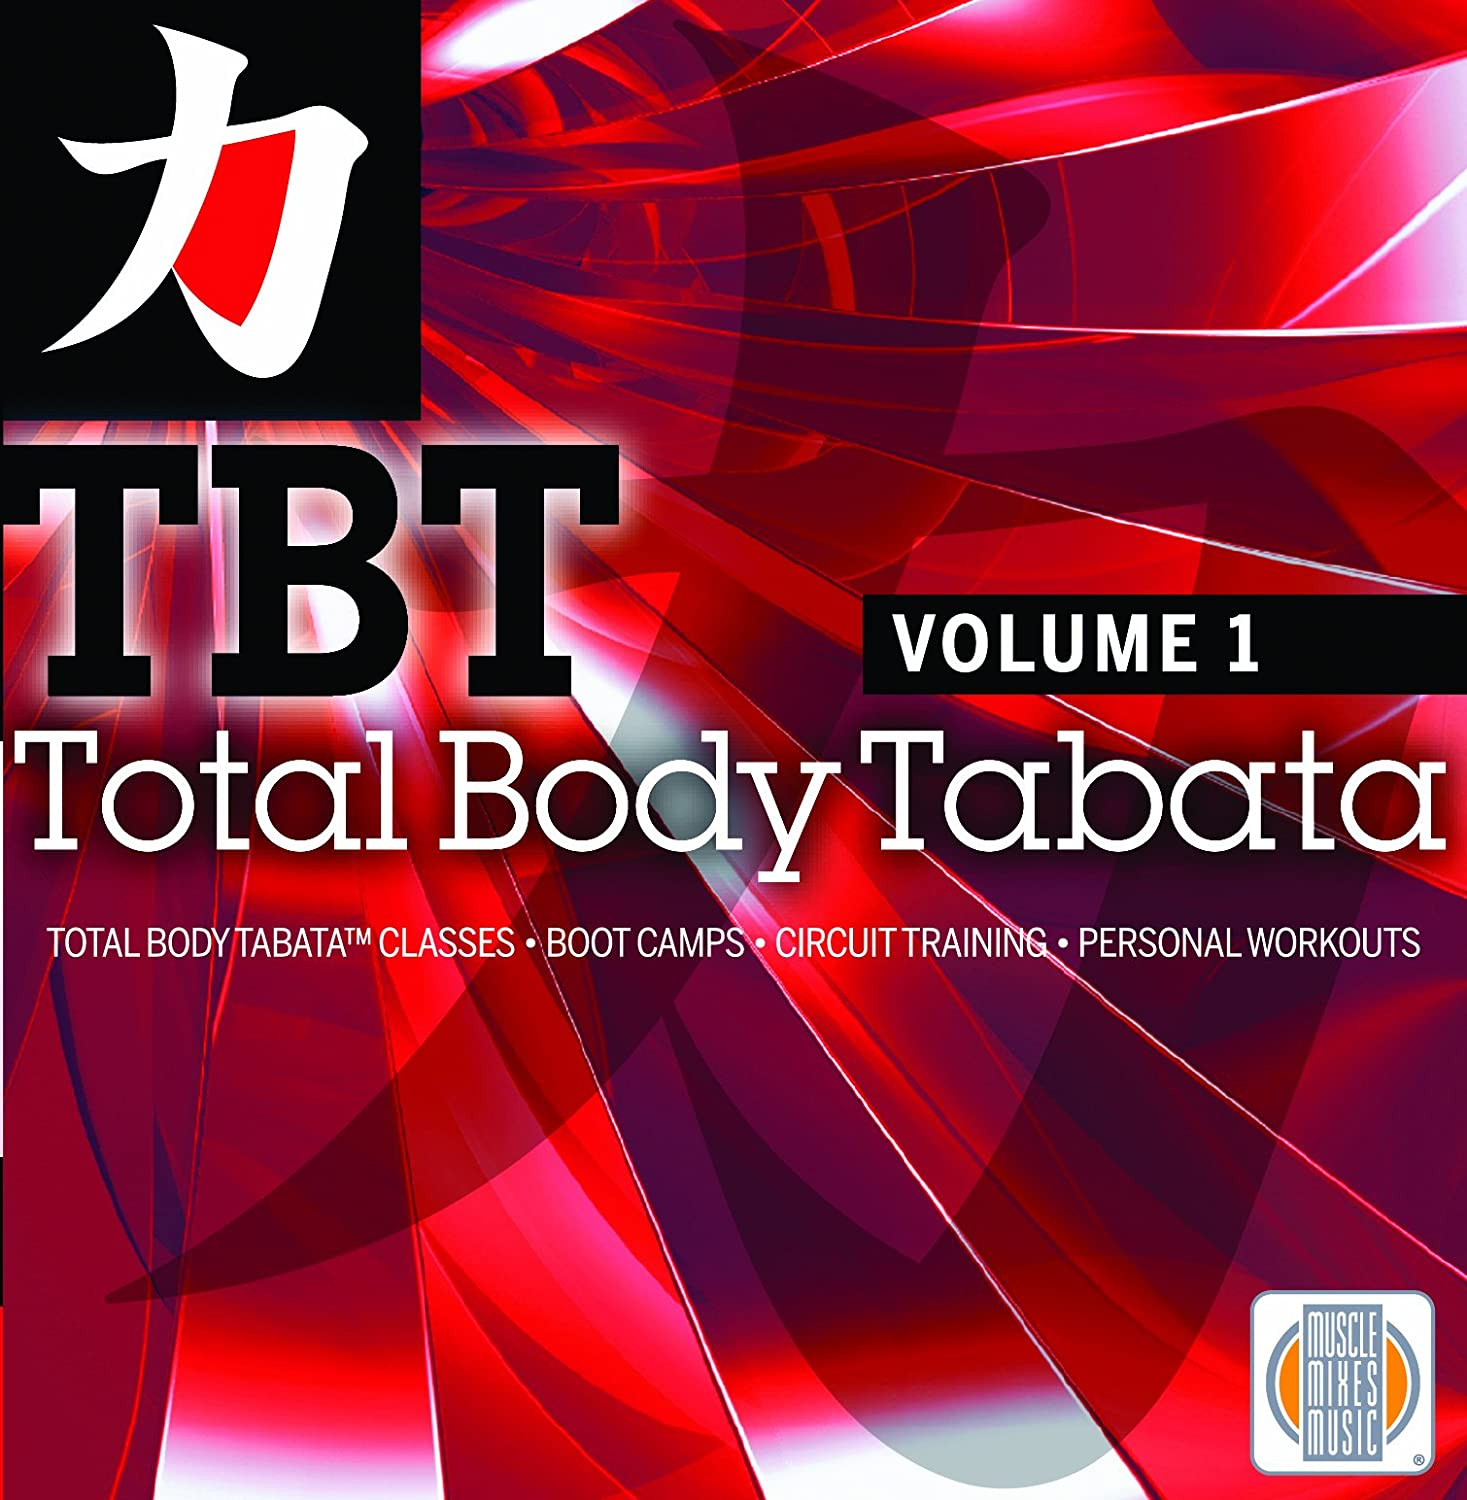 Muscle Mixes Music Total Body Tabata Vol 1 No Timer Needed Workouts Timers For Hiit And Circuit Training Are Included